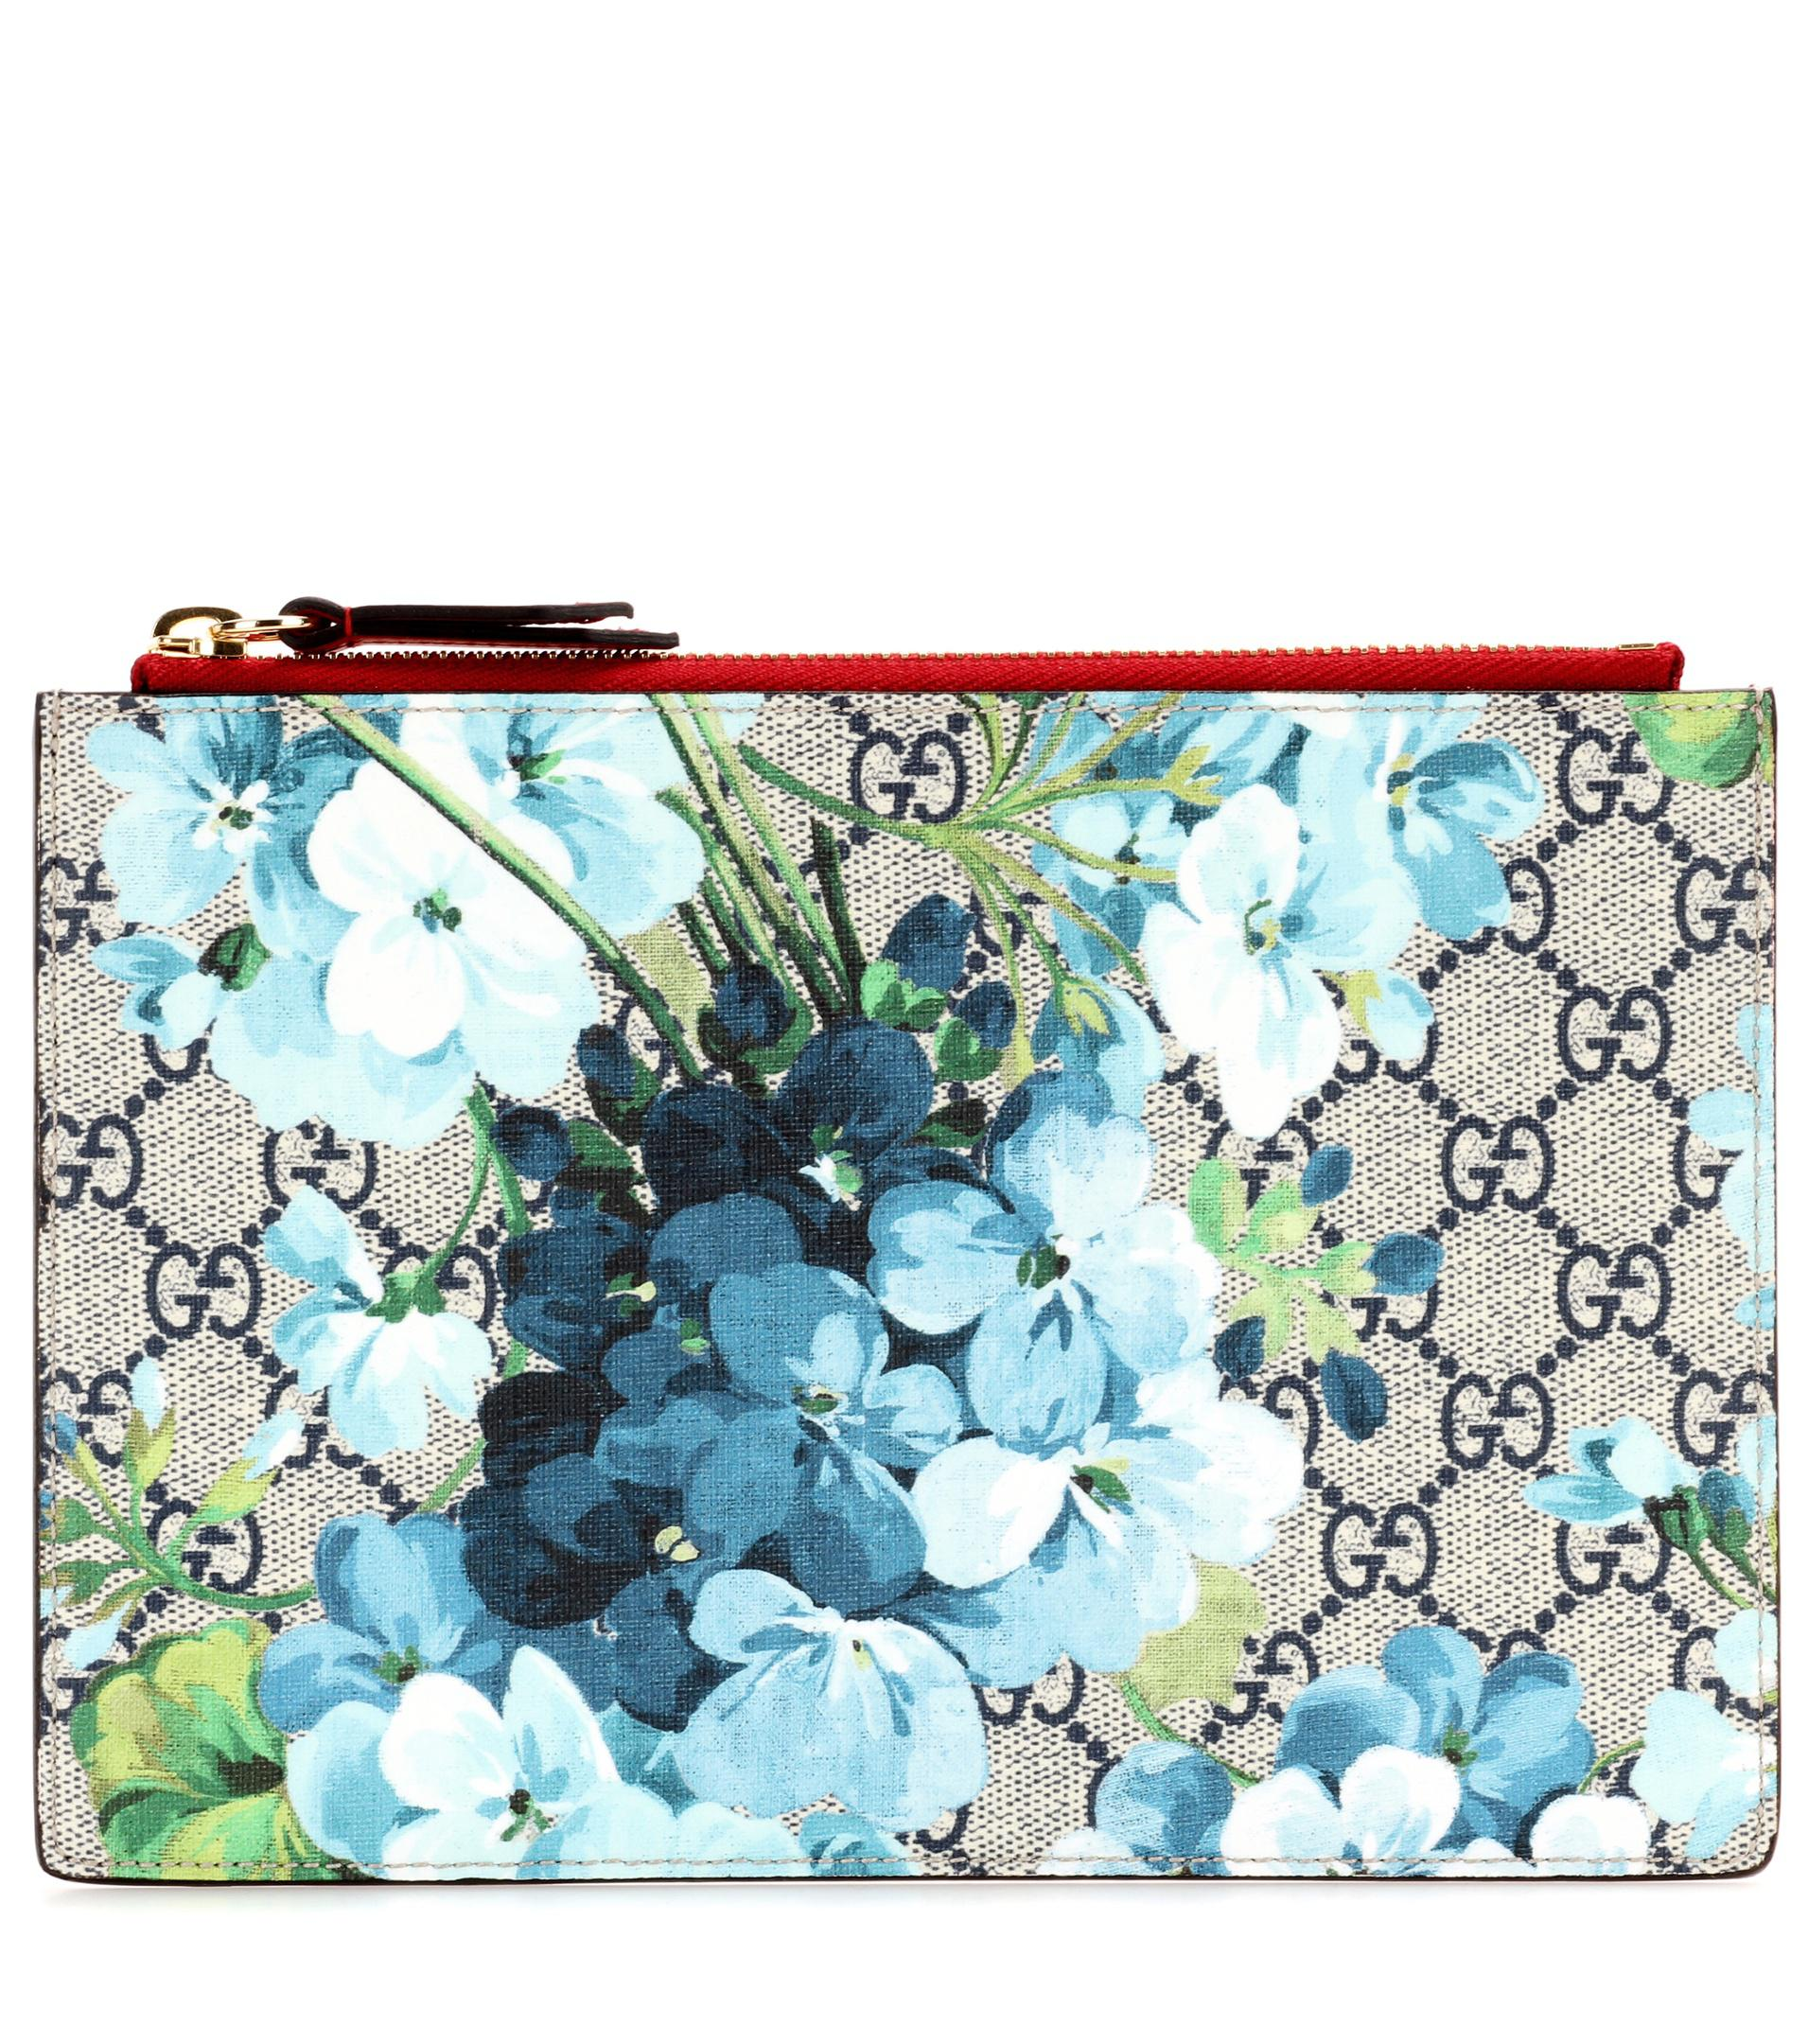 1fd712f20ee Lyst - Gucci Blooms Gg Supreme Printed Canvas And Leather Clutch in Blue